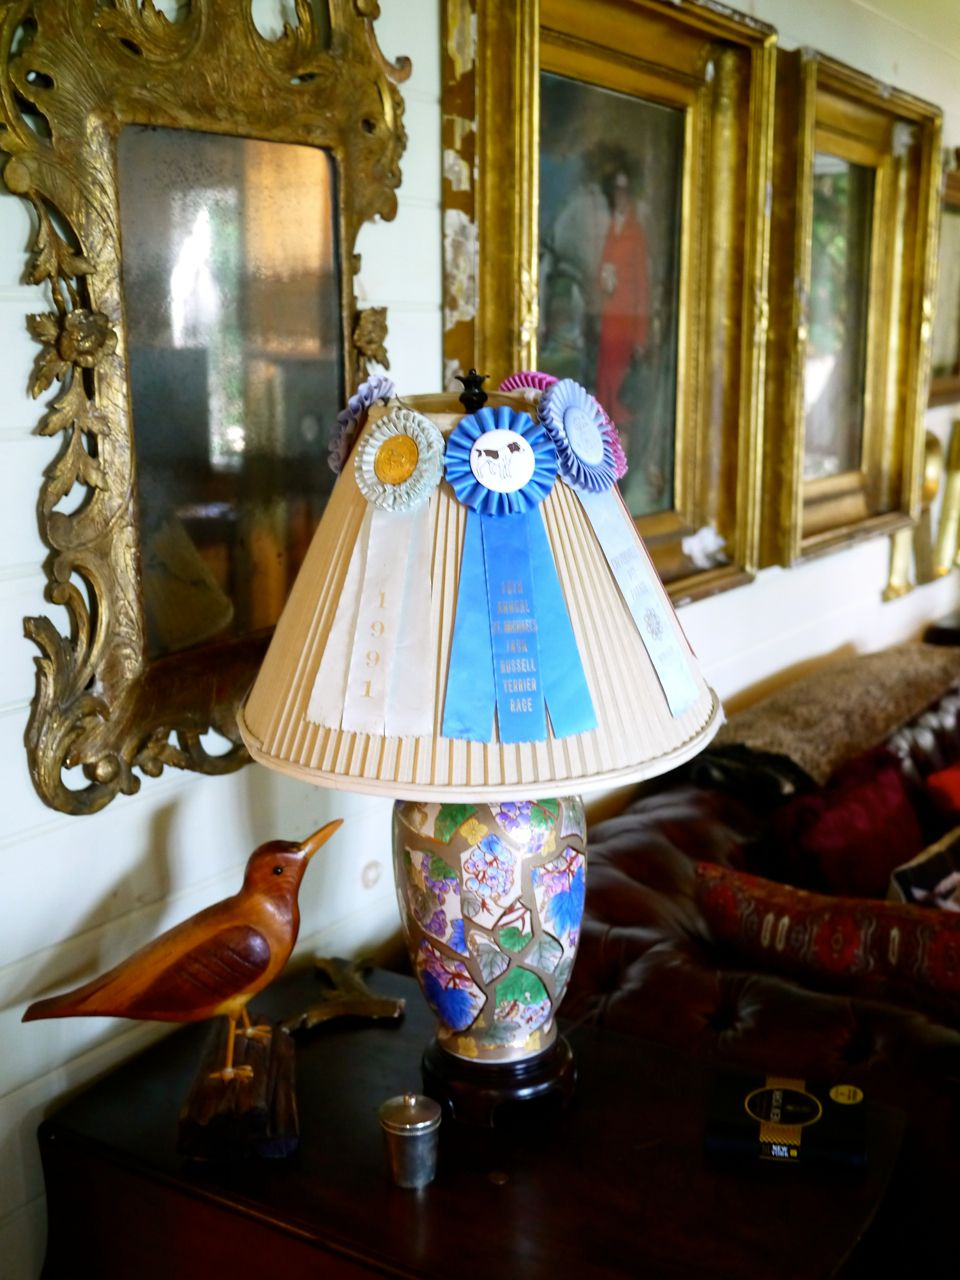 Home interior frames antique paintings in gold frames antique lamp vintage blue ribbons